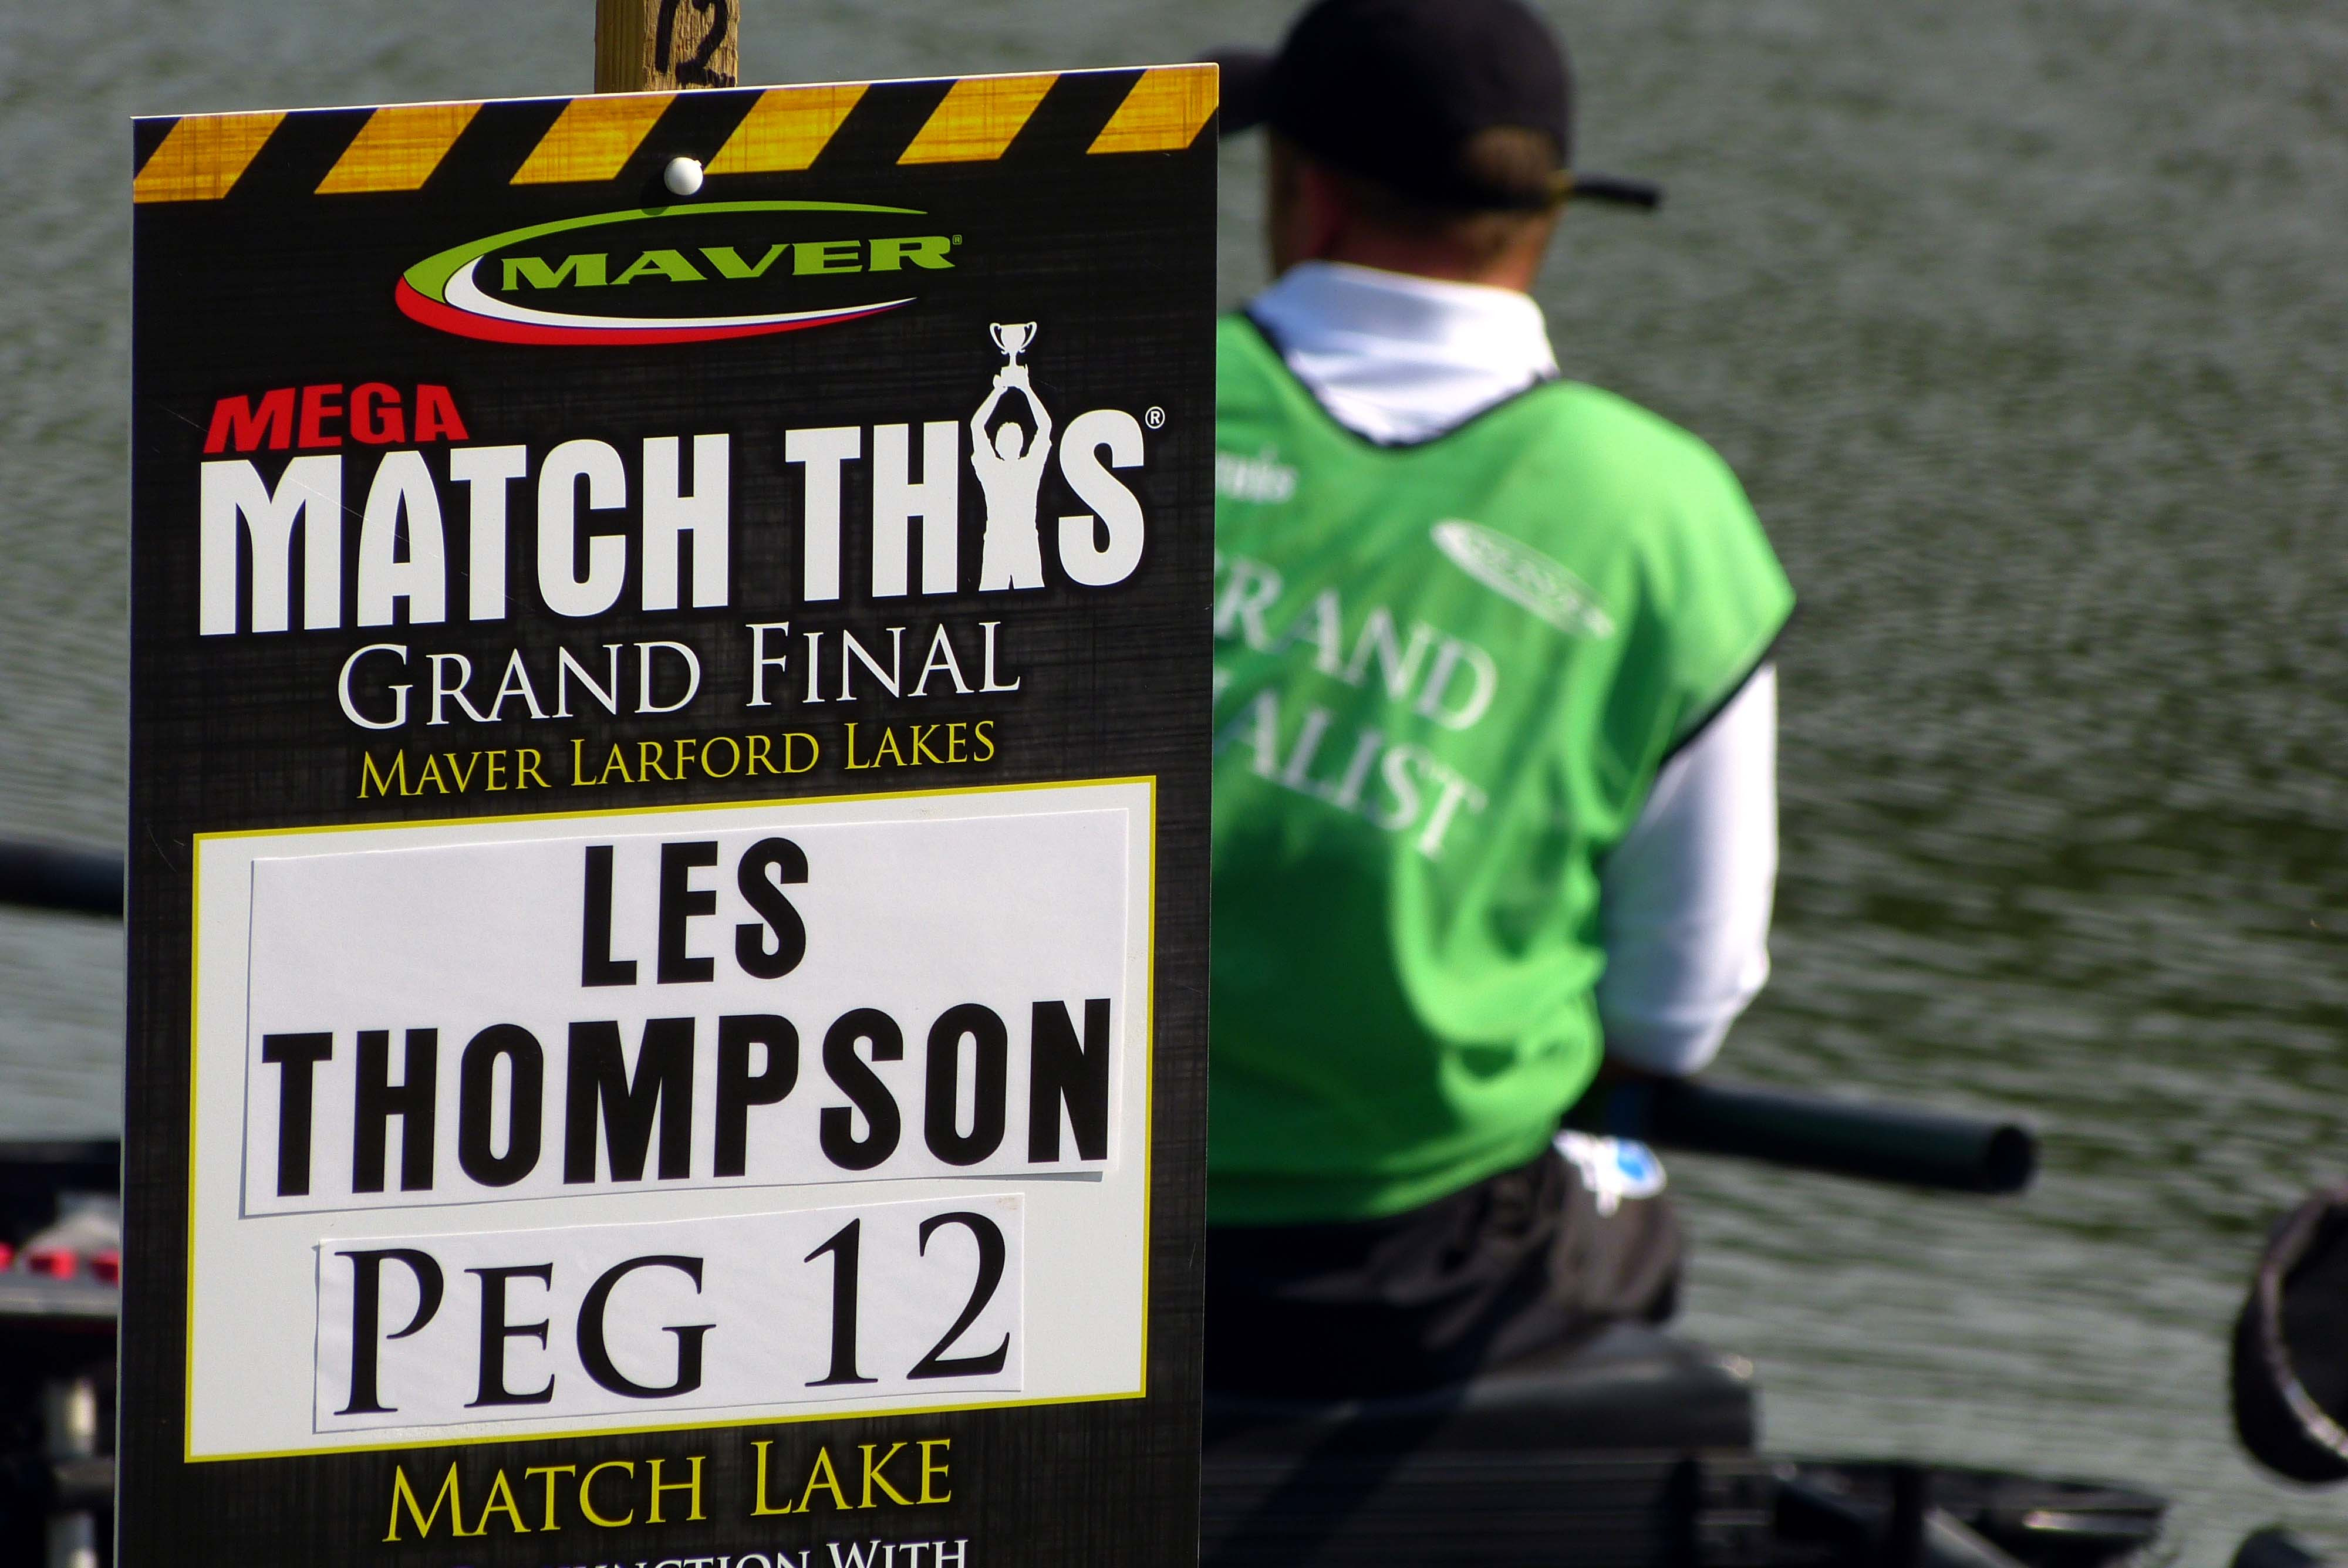 Match blog tues how to win big money fishing for How to win money at fish tables